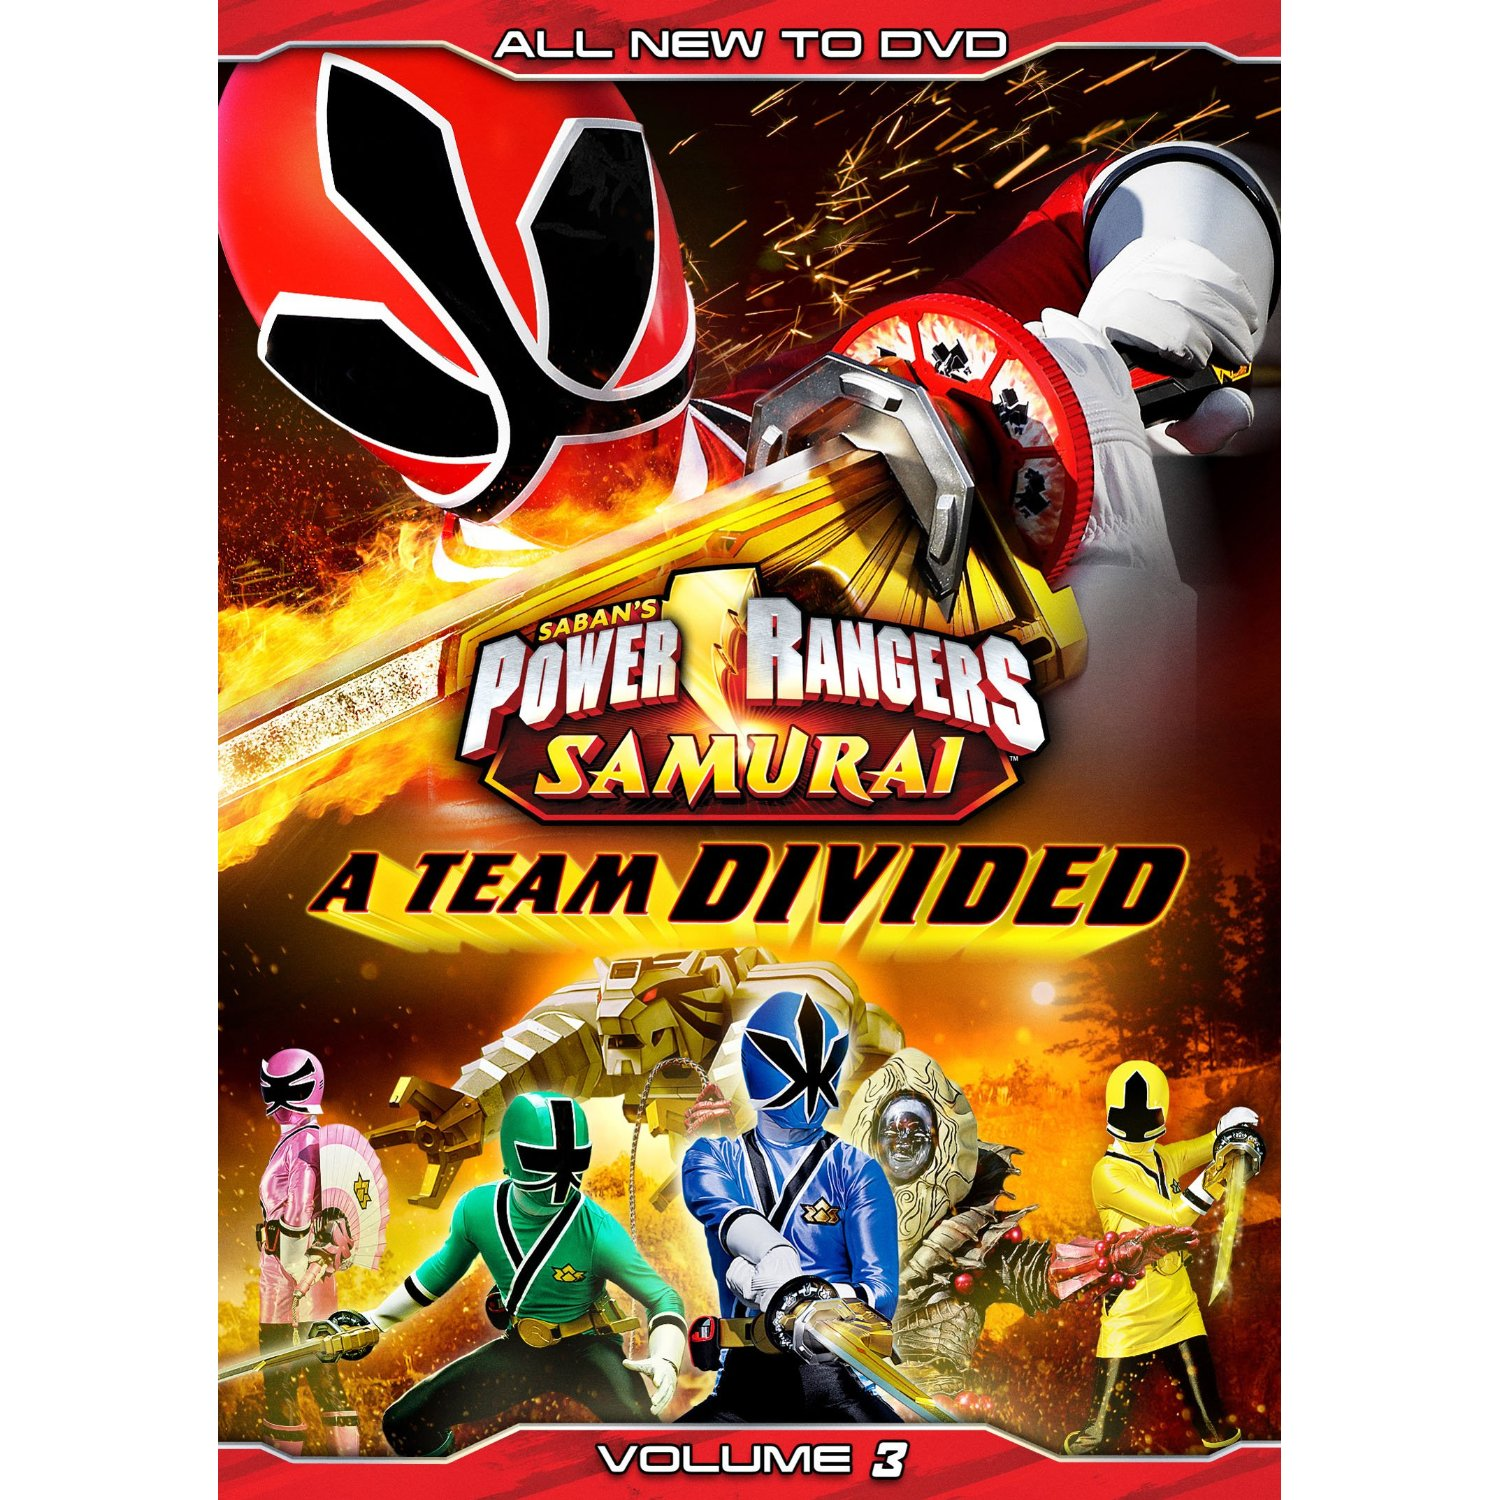 Po po power ranger pages to color - Power Rangers Samurai A Team Divided